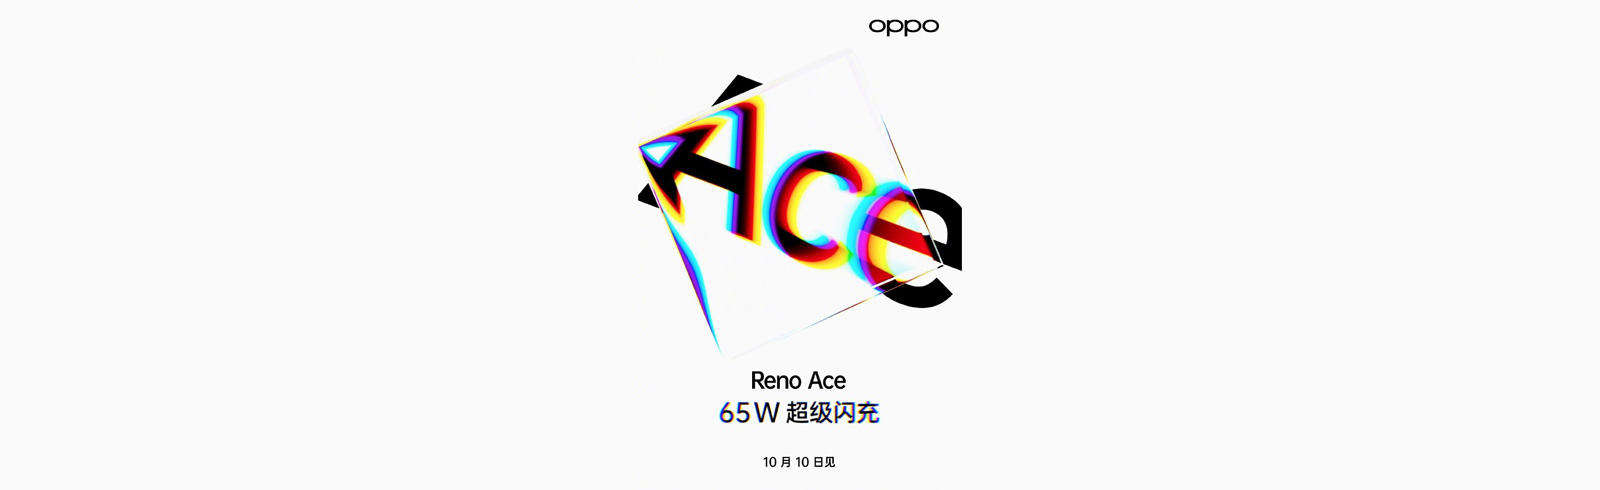 Oppo enriches the Reno series with the Reno Ace, to be unveiled on October 10th